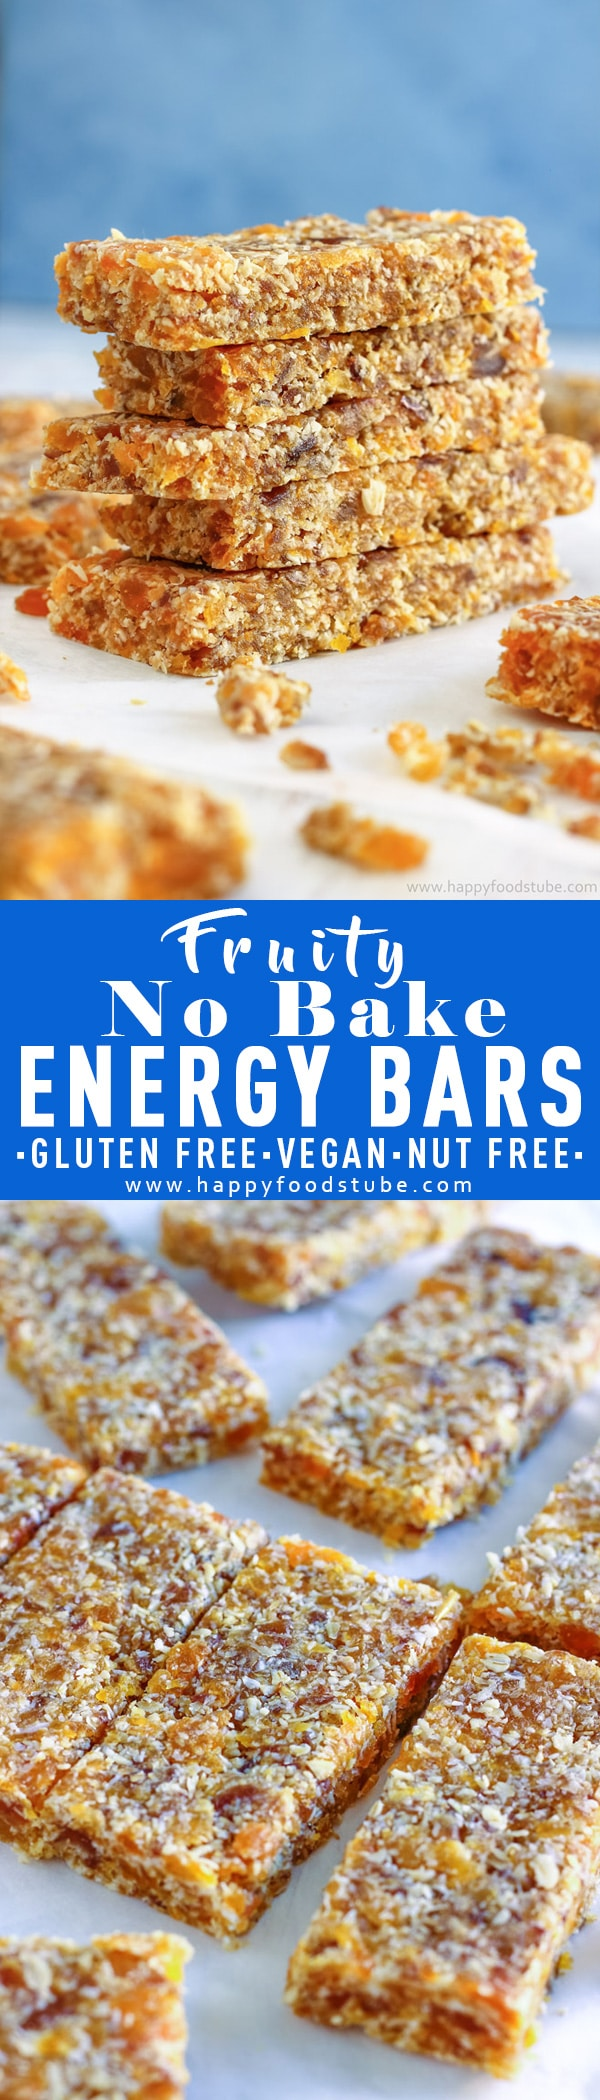 Homemade healthy no bake energy bars. These chewy & naturally sweet bars are made with dried dates and apricots. Vegan, gluten free & nut free recipe